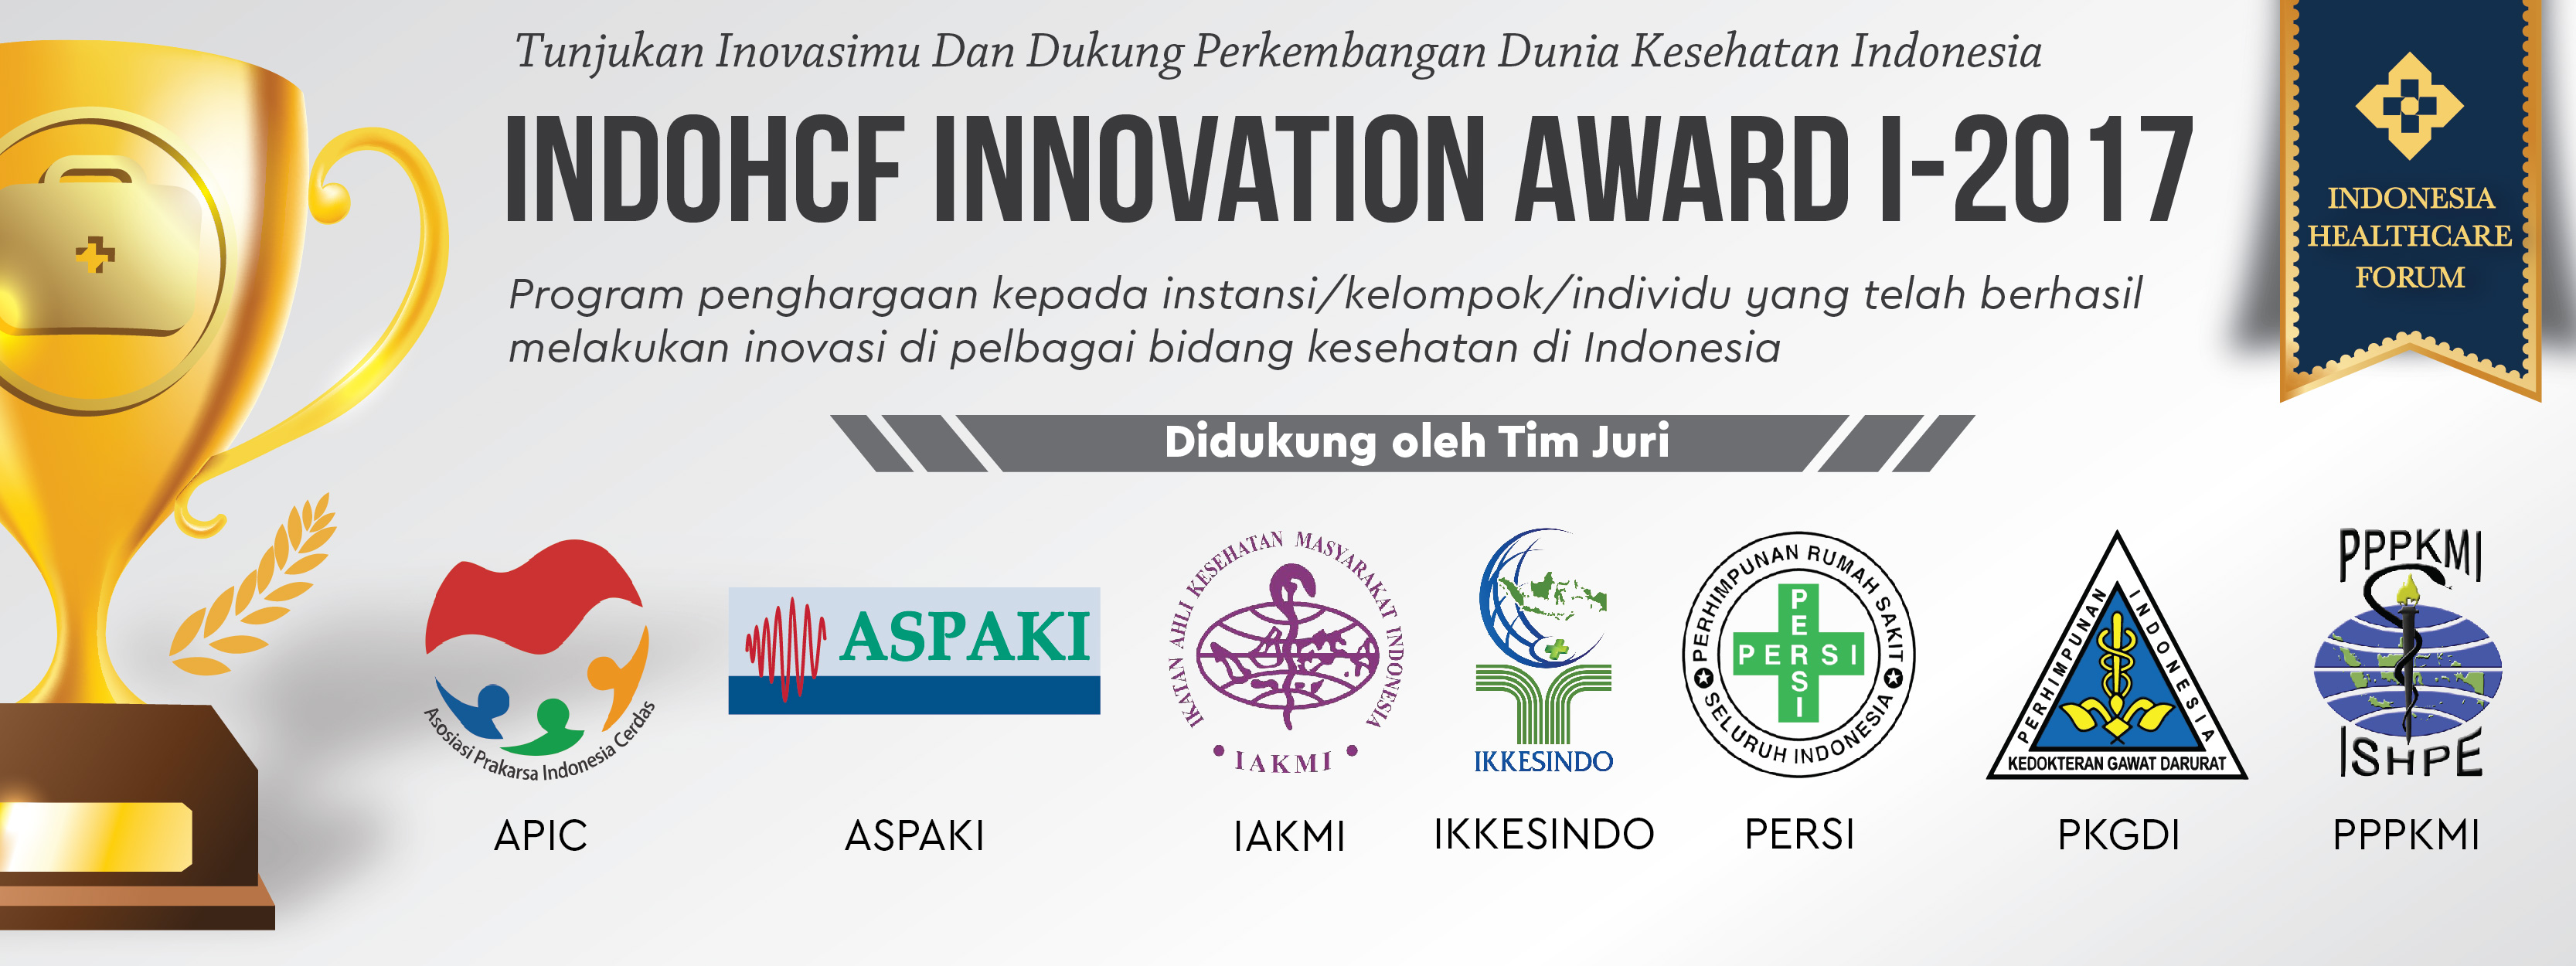 Tim Juri IndoHCF Innovation Award I-2017